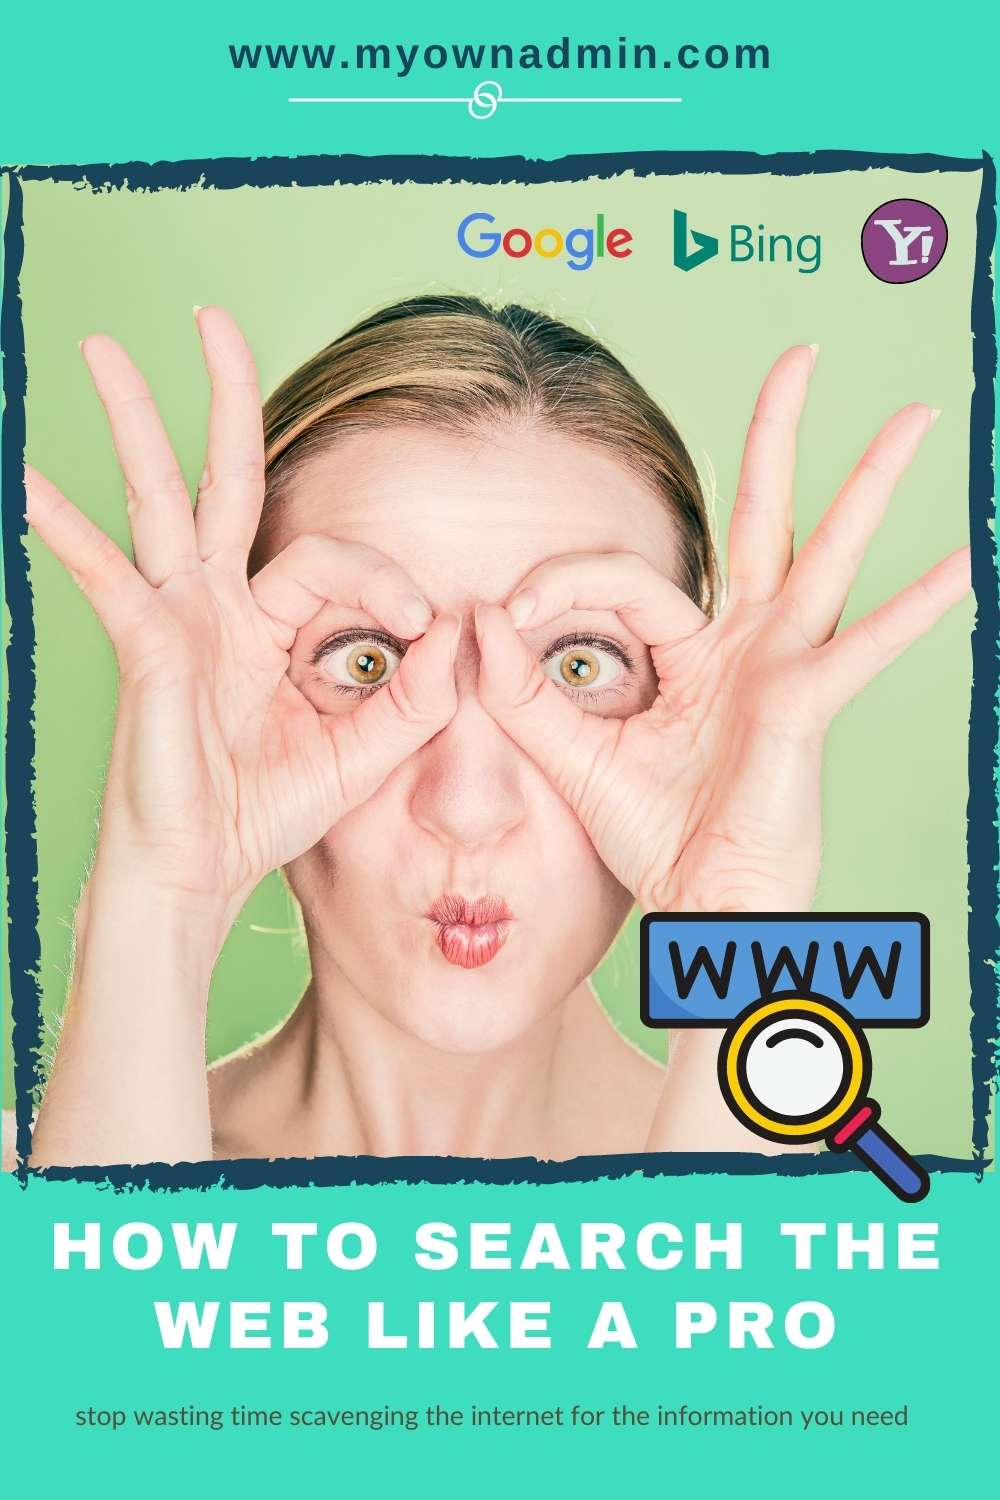 How to Search the Web Like a Pro